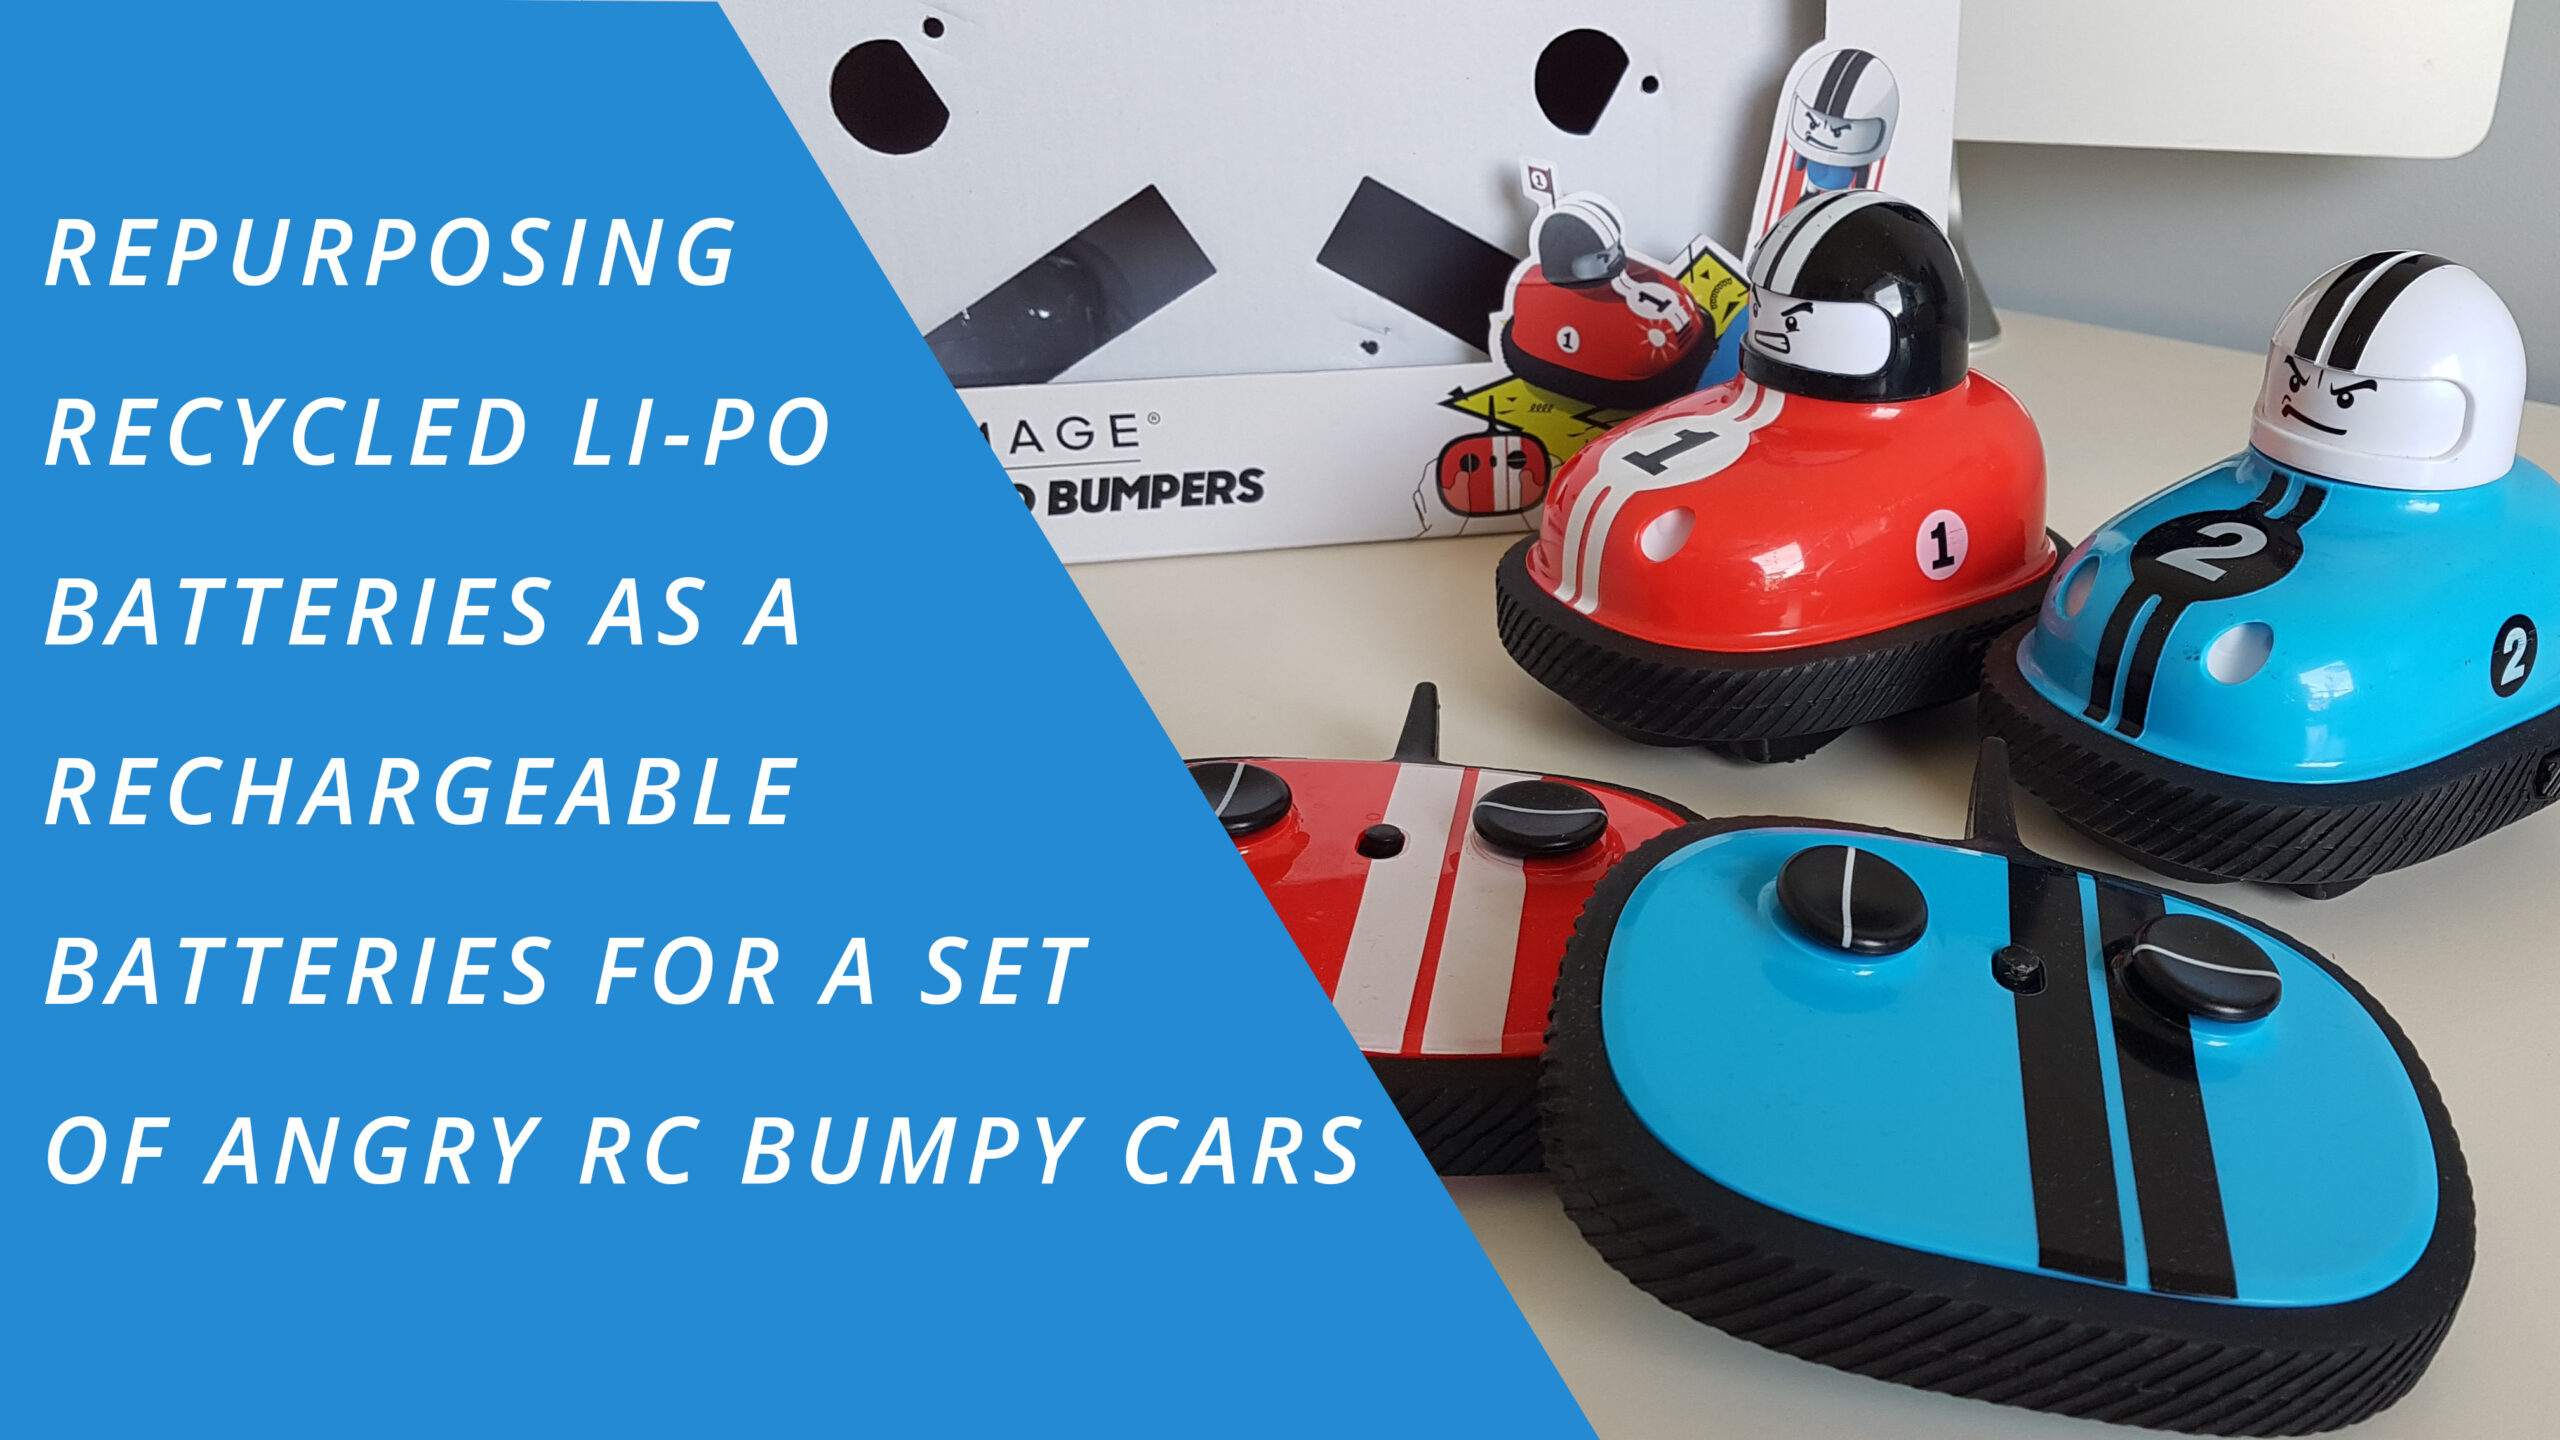 Repurposing recycled 18650 Li-Po battery in Remote Controlled bumpy cars